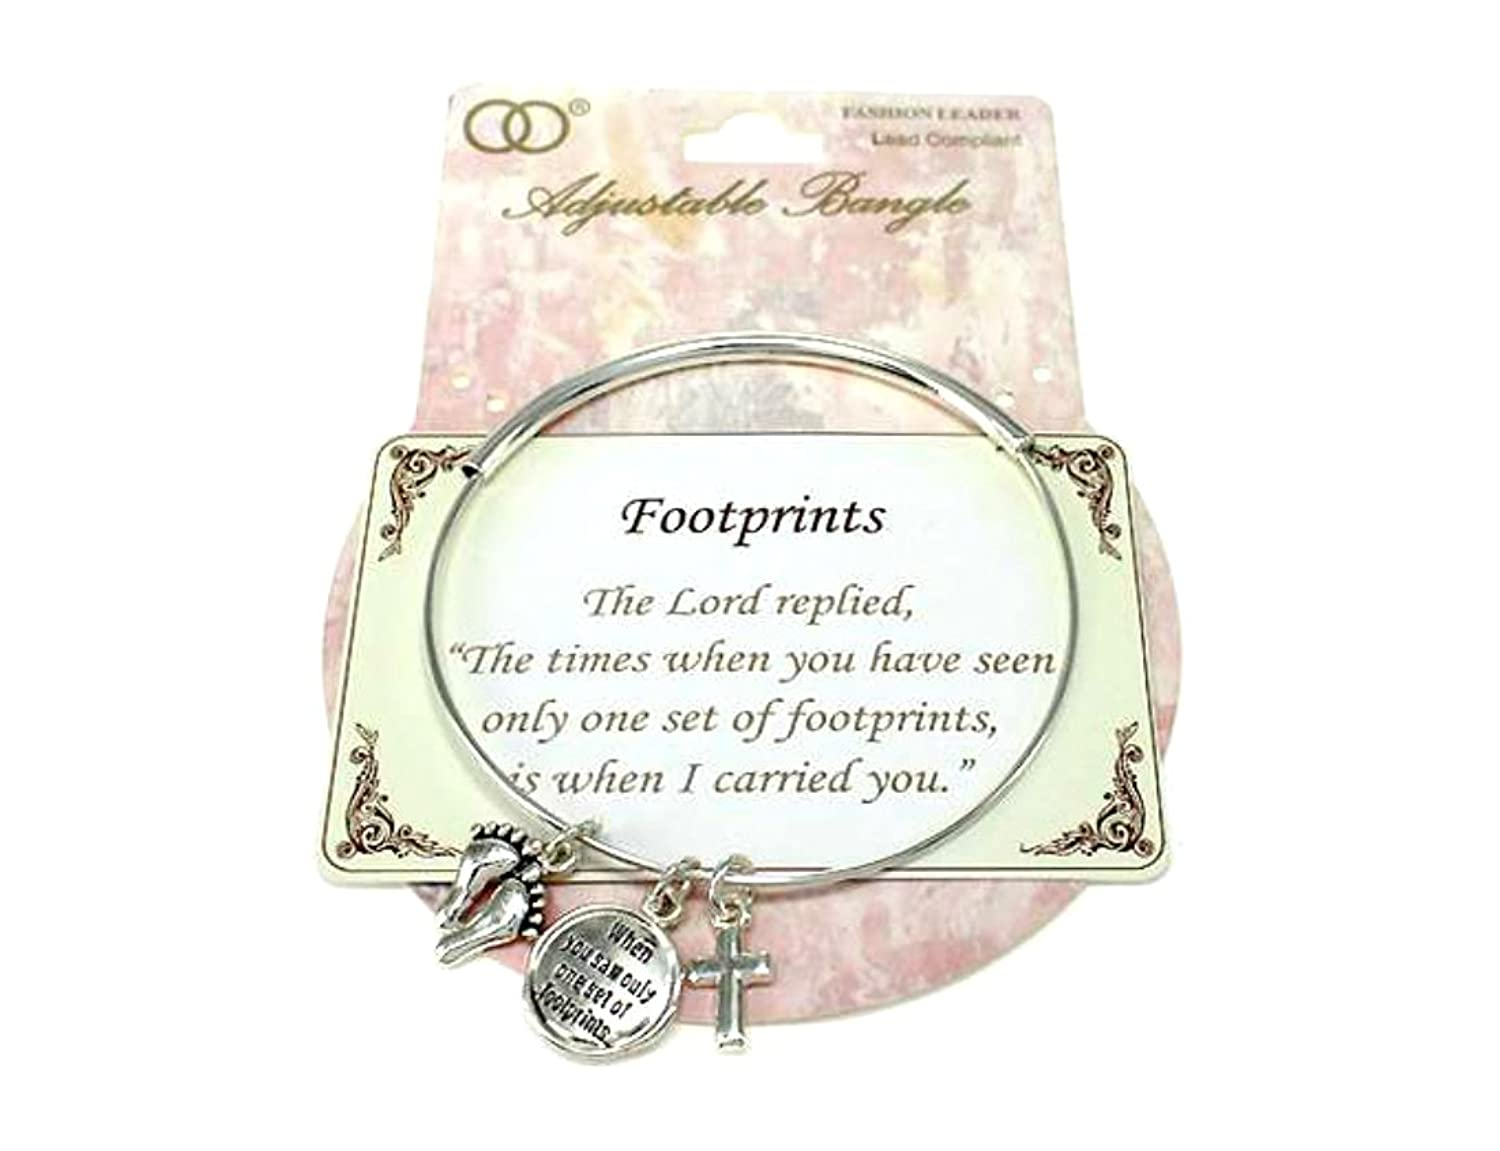 """Footprints"" Religious Inspirational Engraved Silver-tone Adjustable Bracelet w/Charms By Athena Brand"